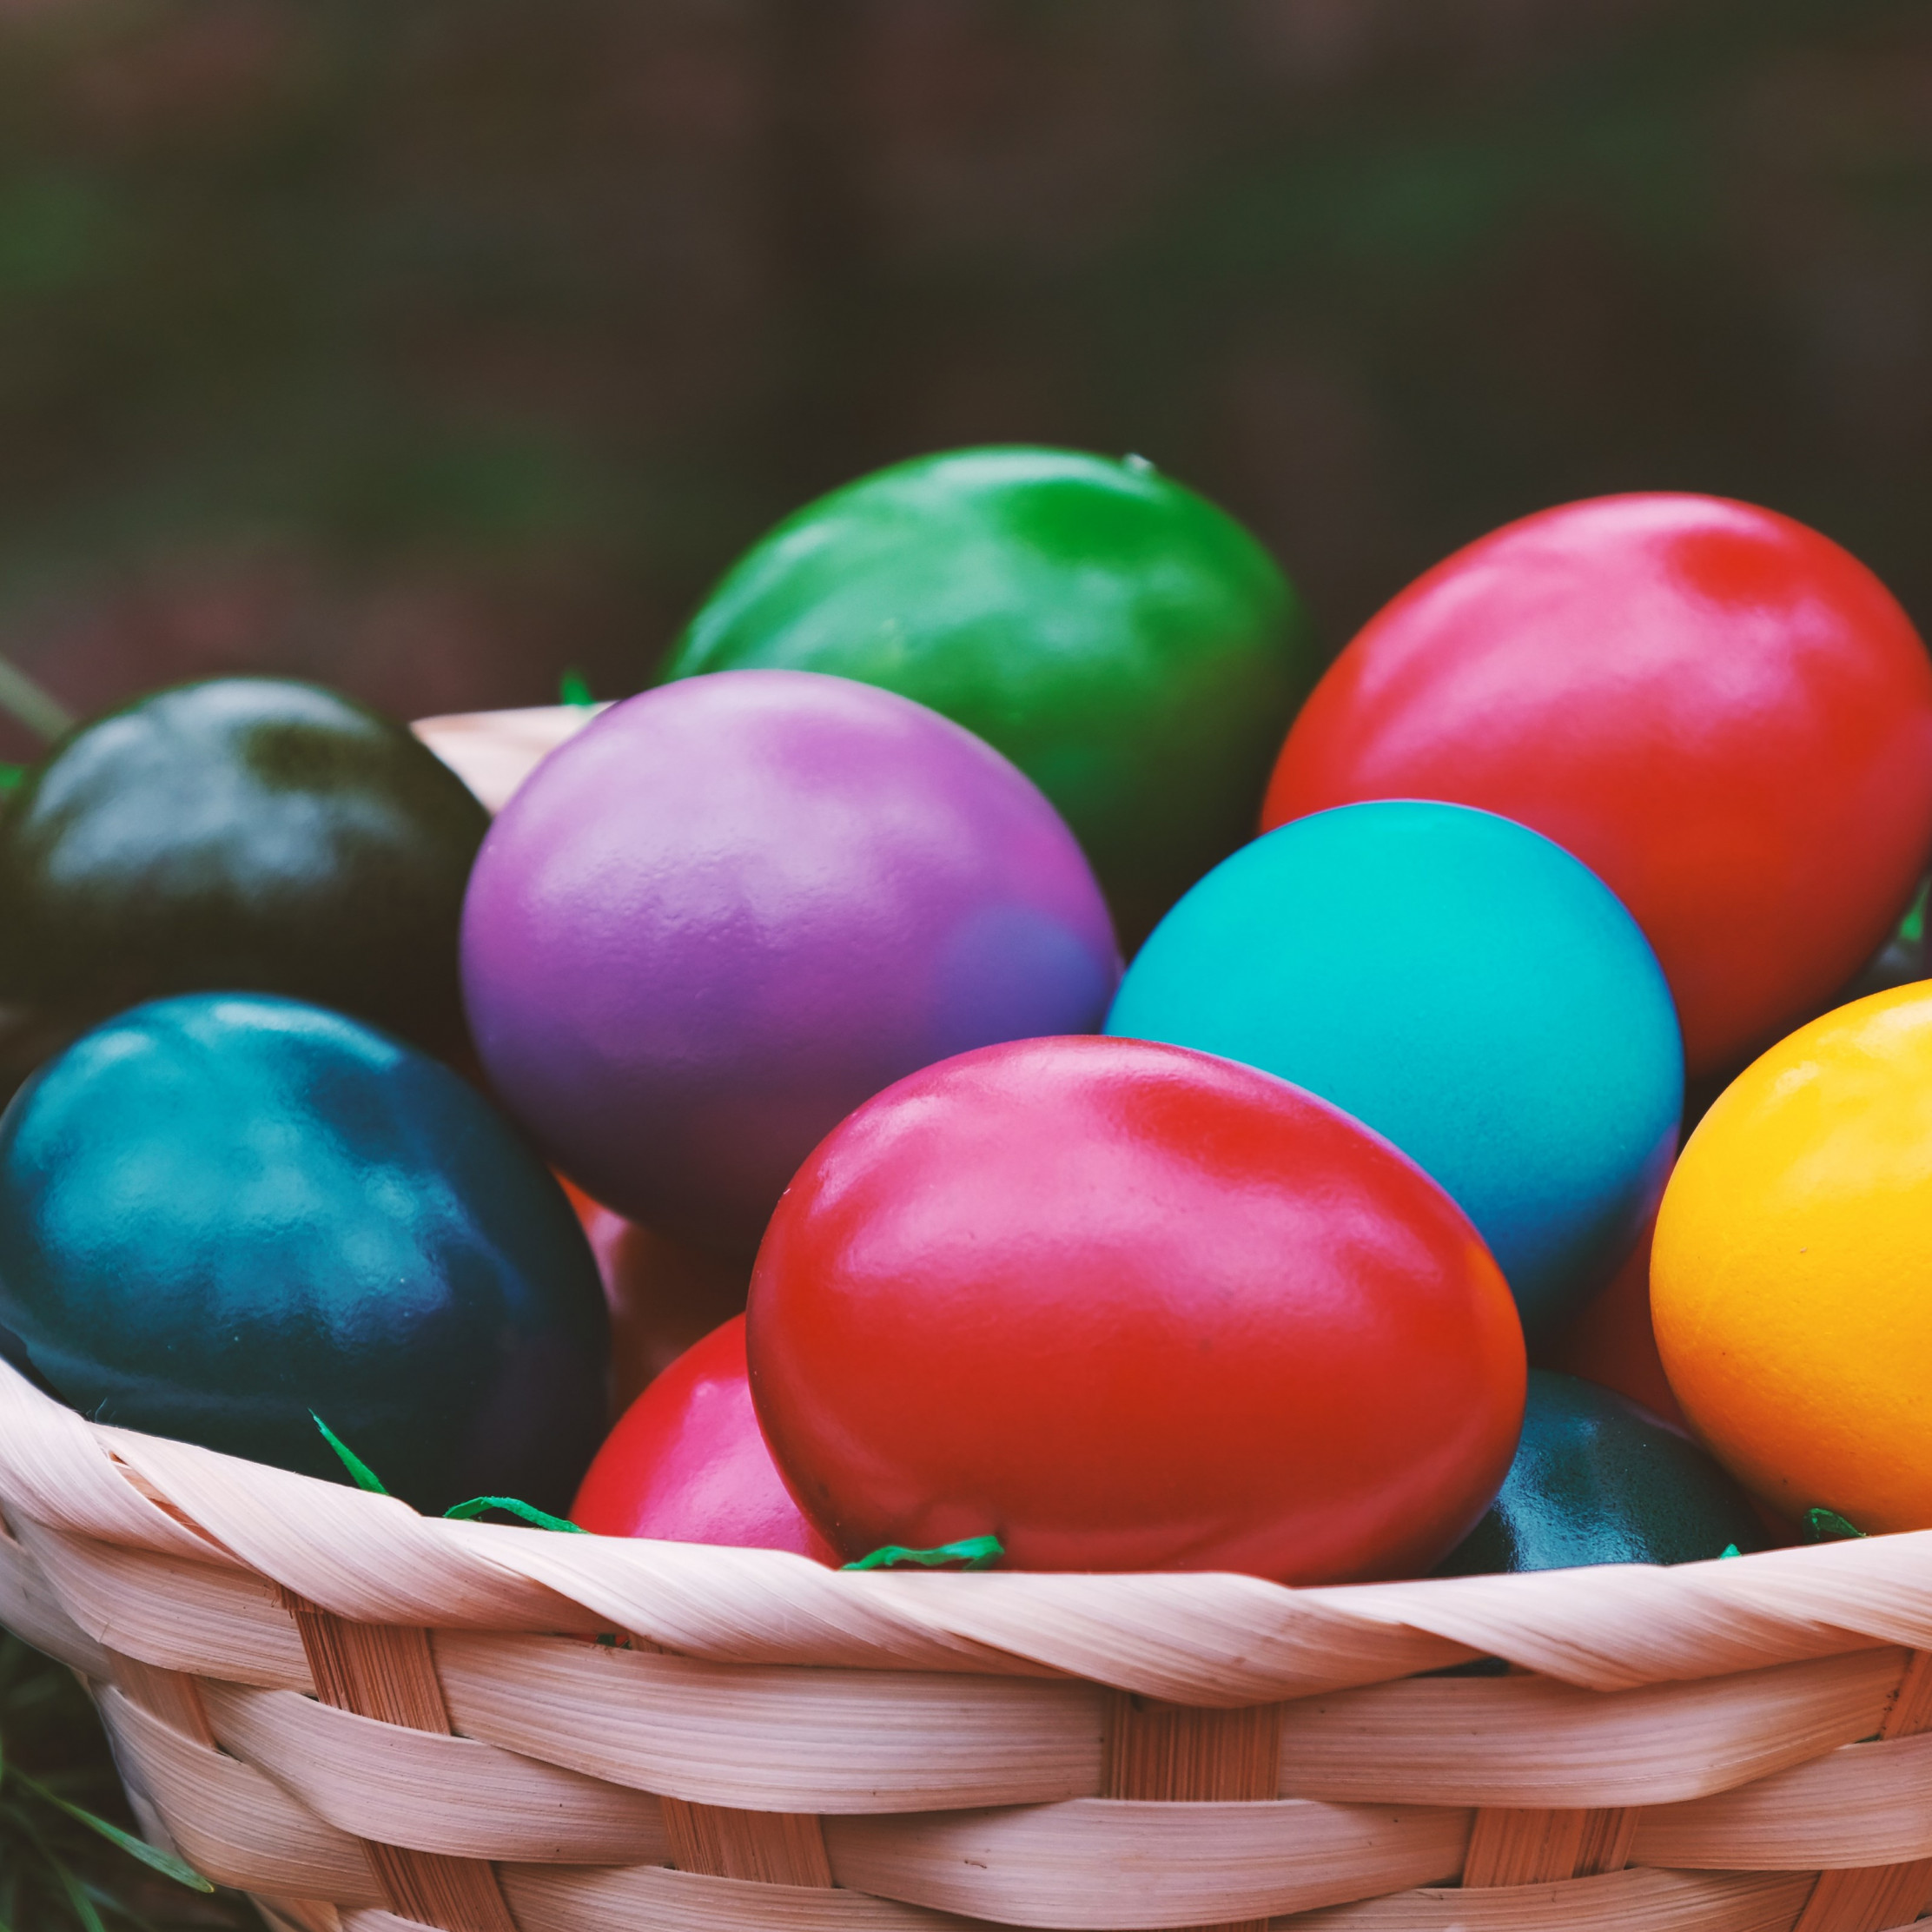 Easter eggs basket wallpaper 2224x2224